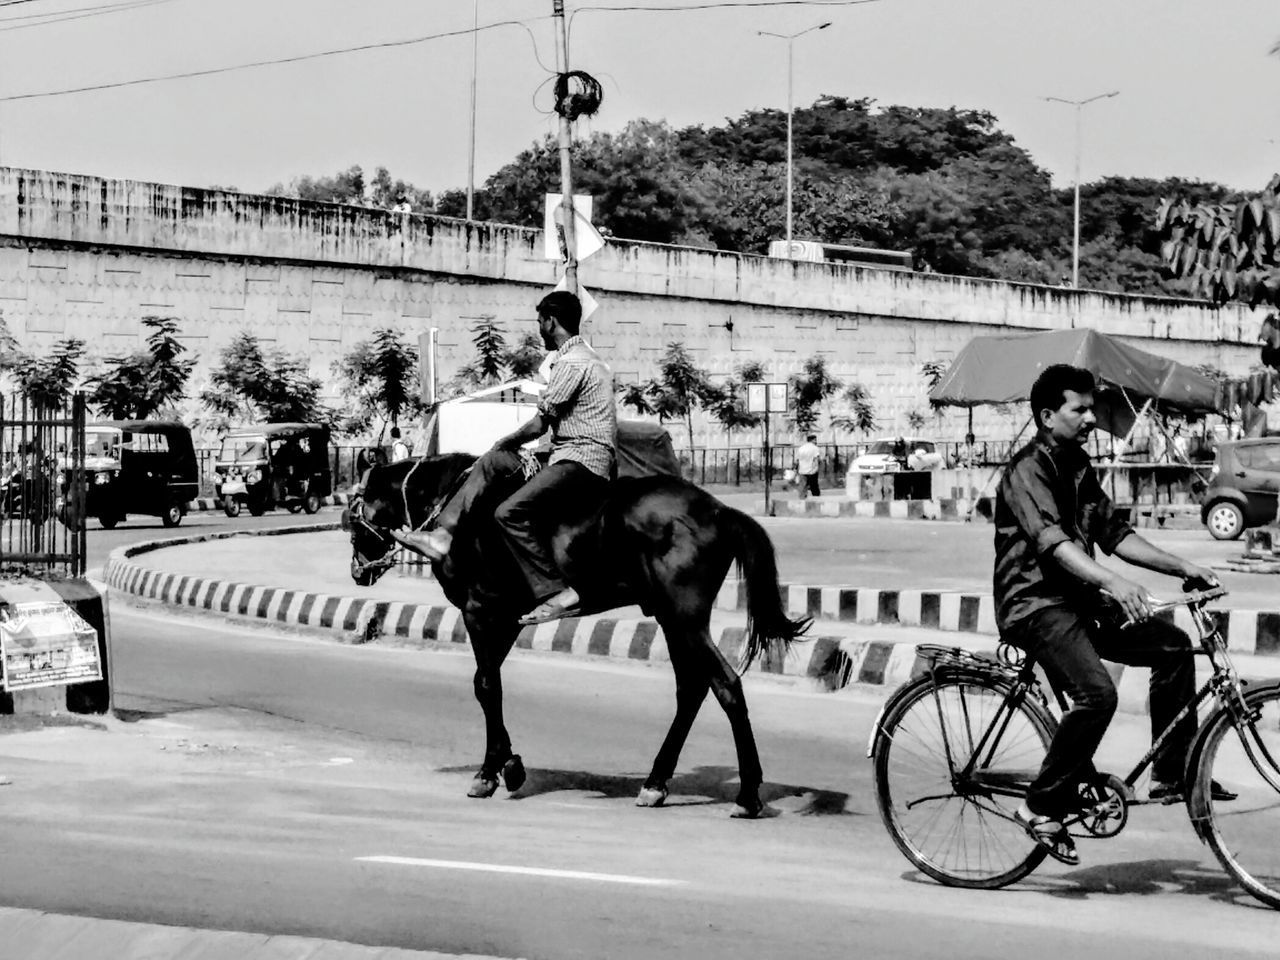 Monochrome Photography Mode Of Transport Monoart Horse Riding Eye4photography  EyeEm Best Shots EyeEm Nature Lover Bhubaneswar Eye Em Travel India EyeEm Gallery CyclingUnites Check This Out Taking Photos Eyemphotography EyeEmBestPics Life In Motion EyeEm Best Shots - Black + White Commute Roadsidephotography Outdoors Streetphoto_bw Monochrome